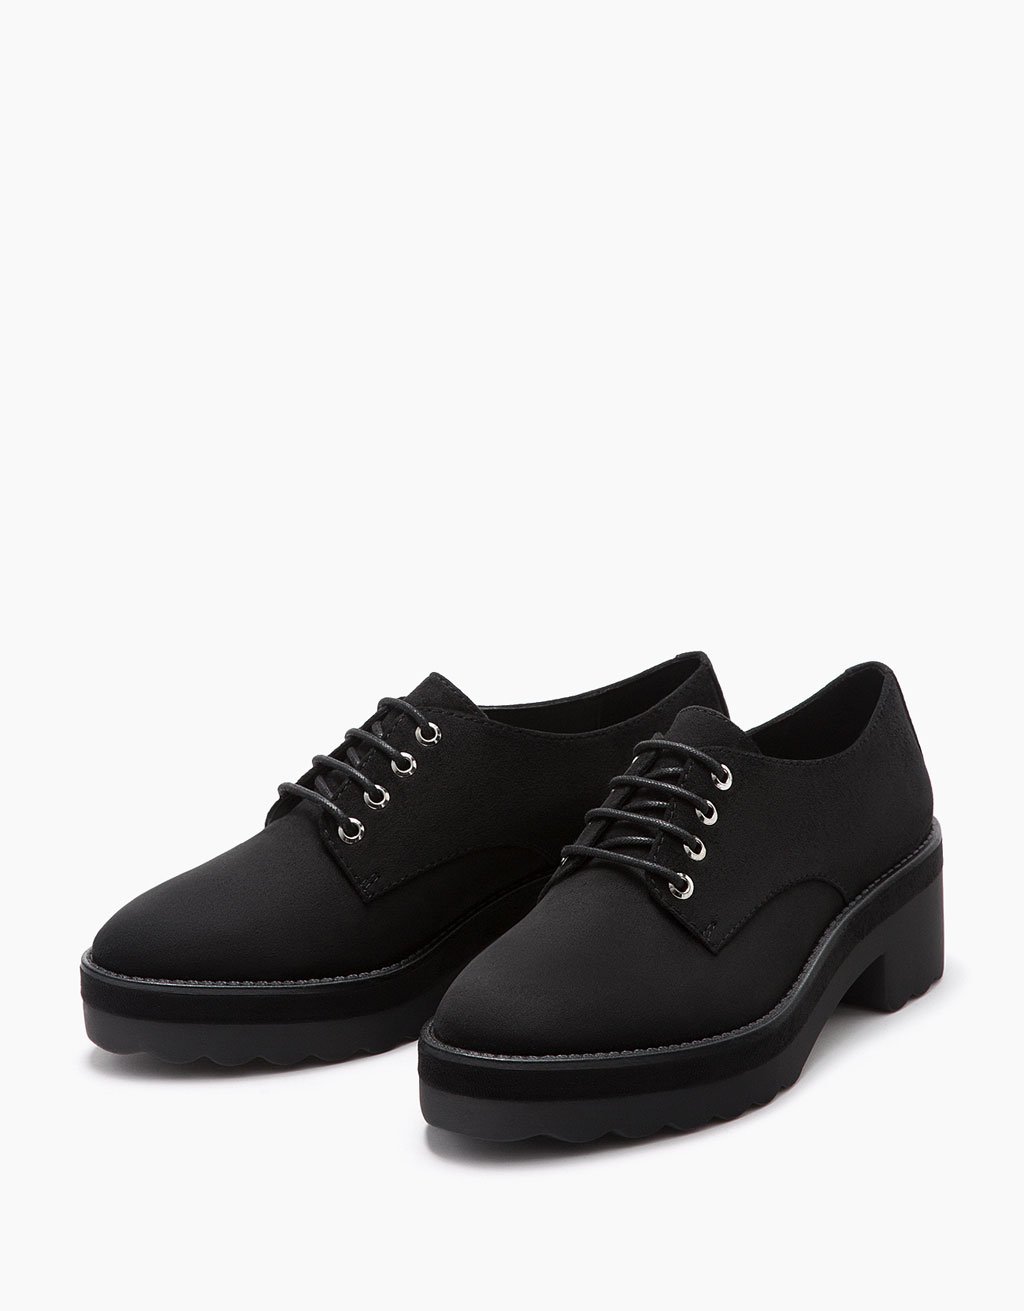 Flat lace-up shoes